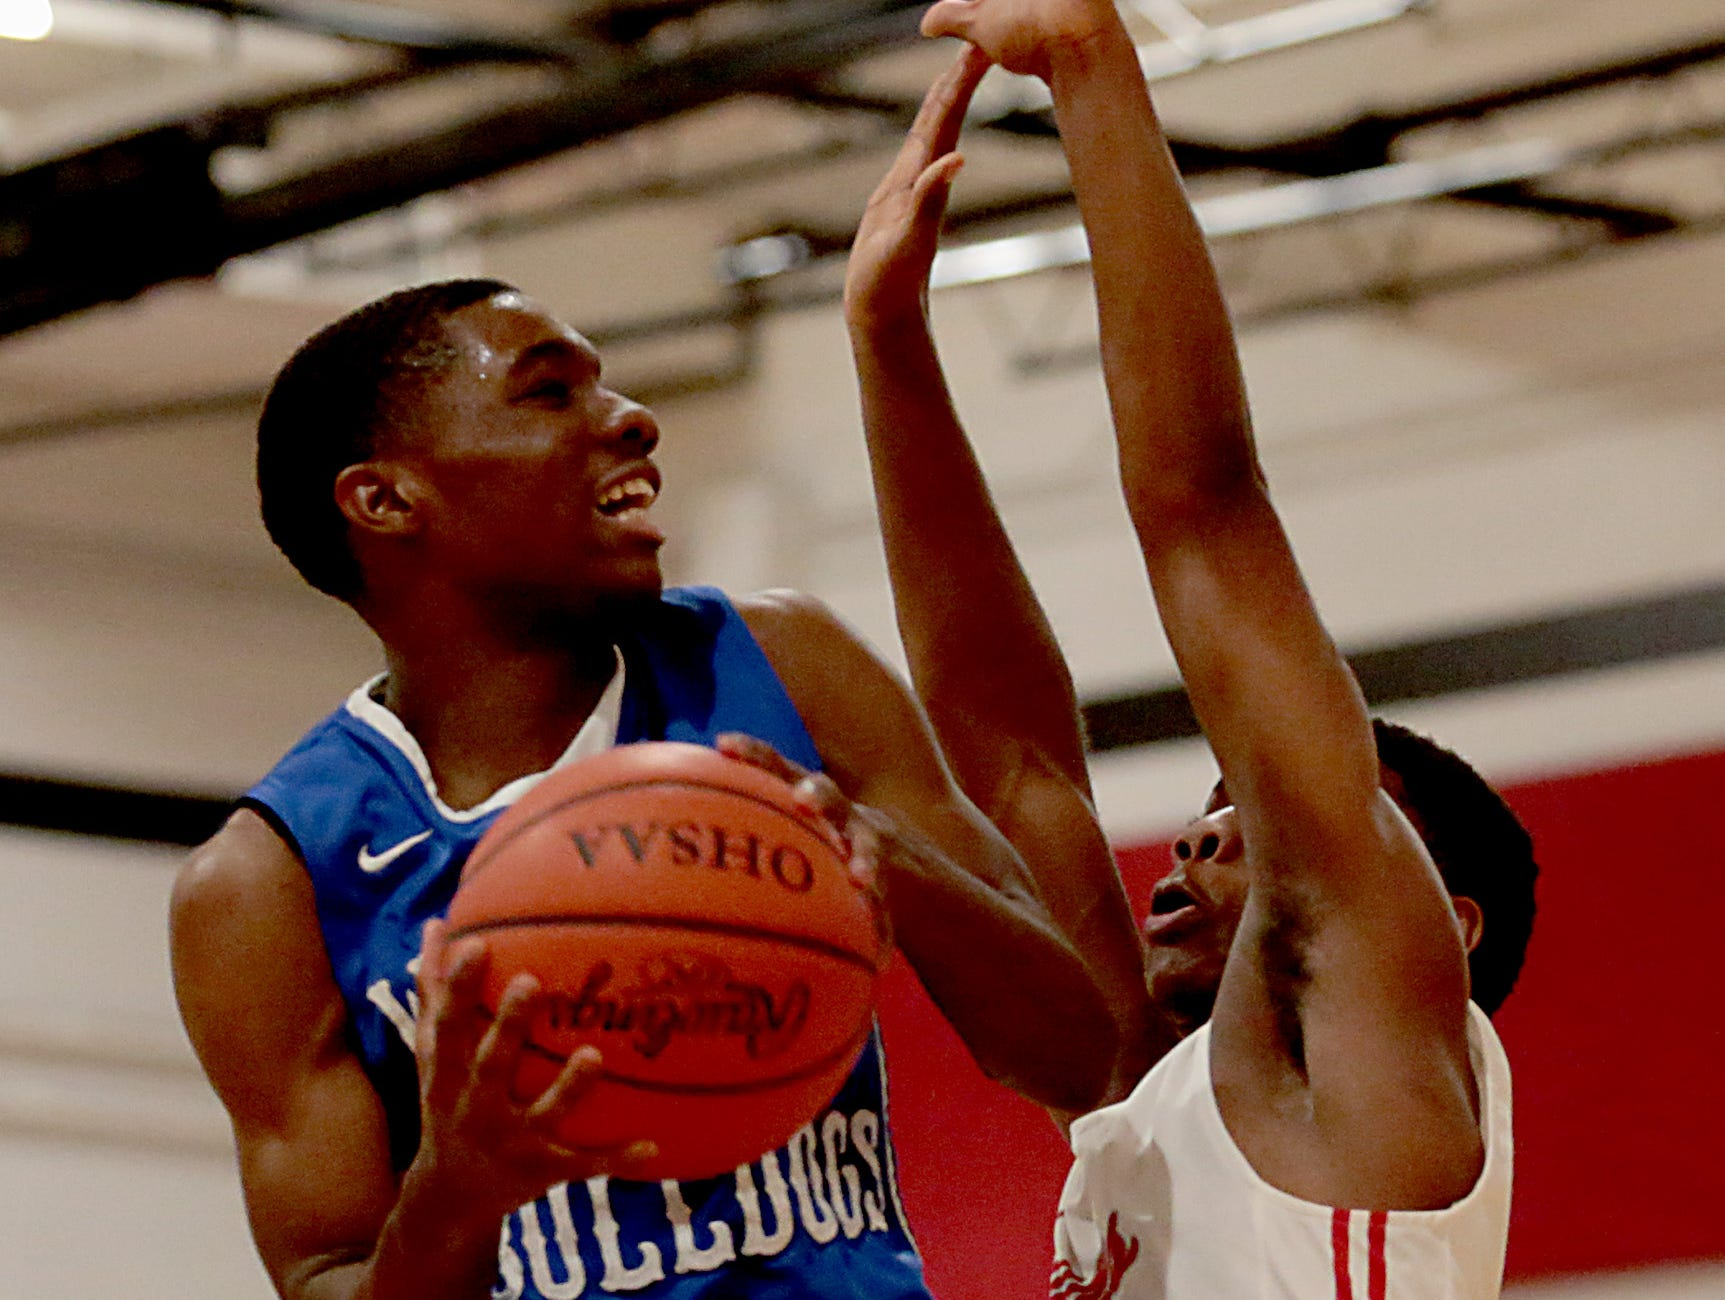 Woodward guard Marquez Whitmire shoots against Hughes guard Keontay Wills during their game at Hughes in Clifton Friday, Nov. 30, 2018.